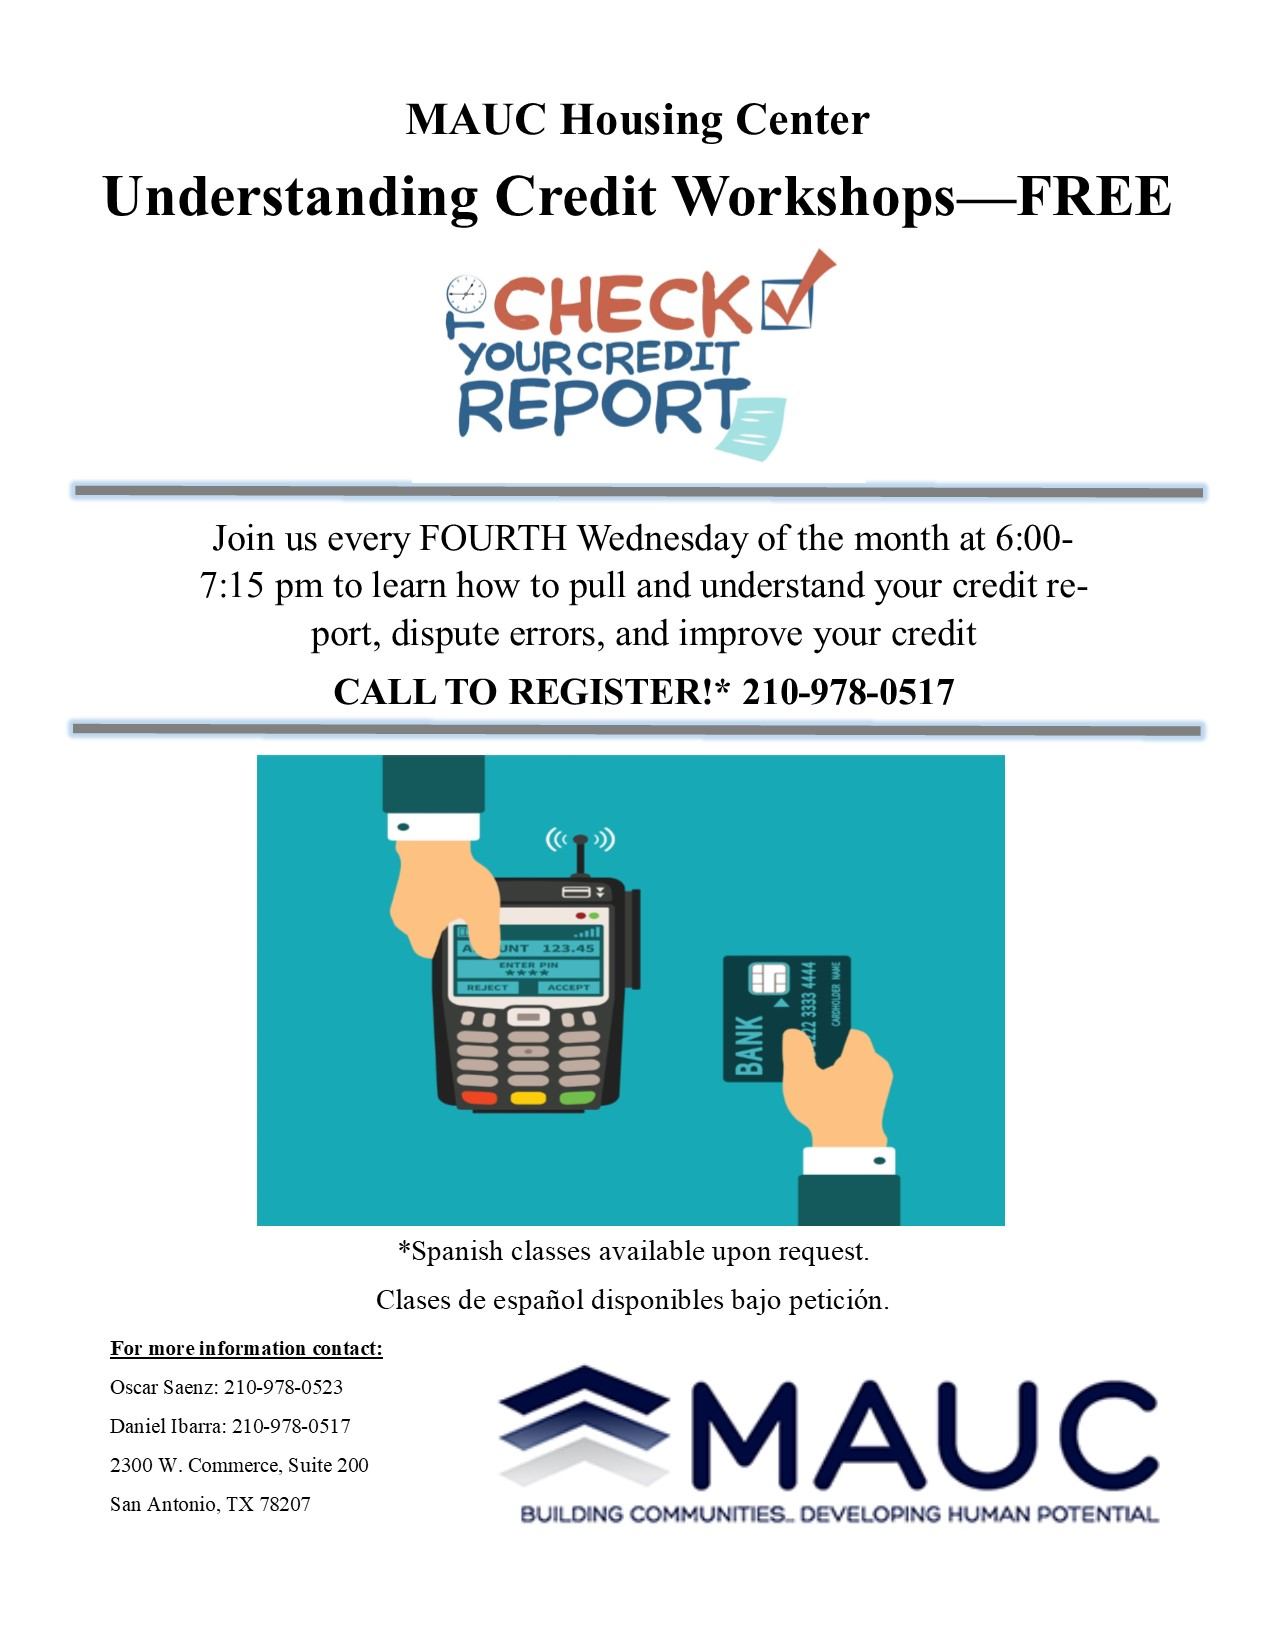 Credit Worshop Flyer